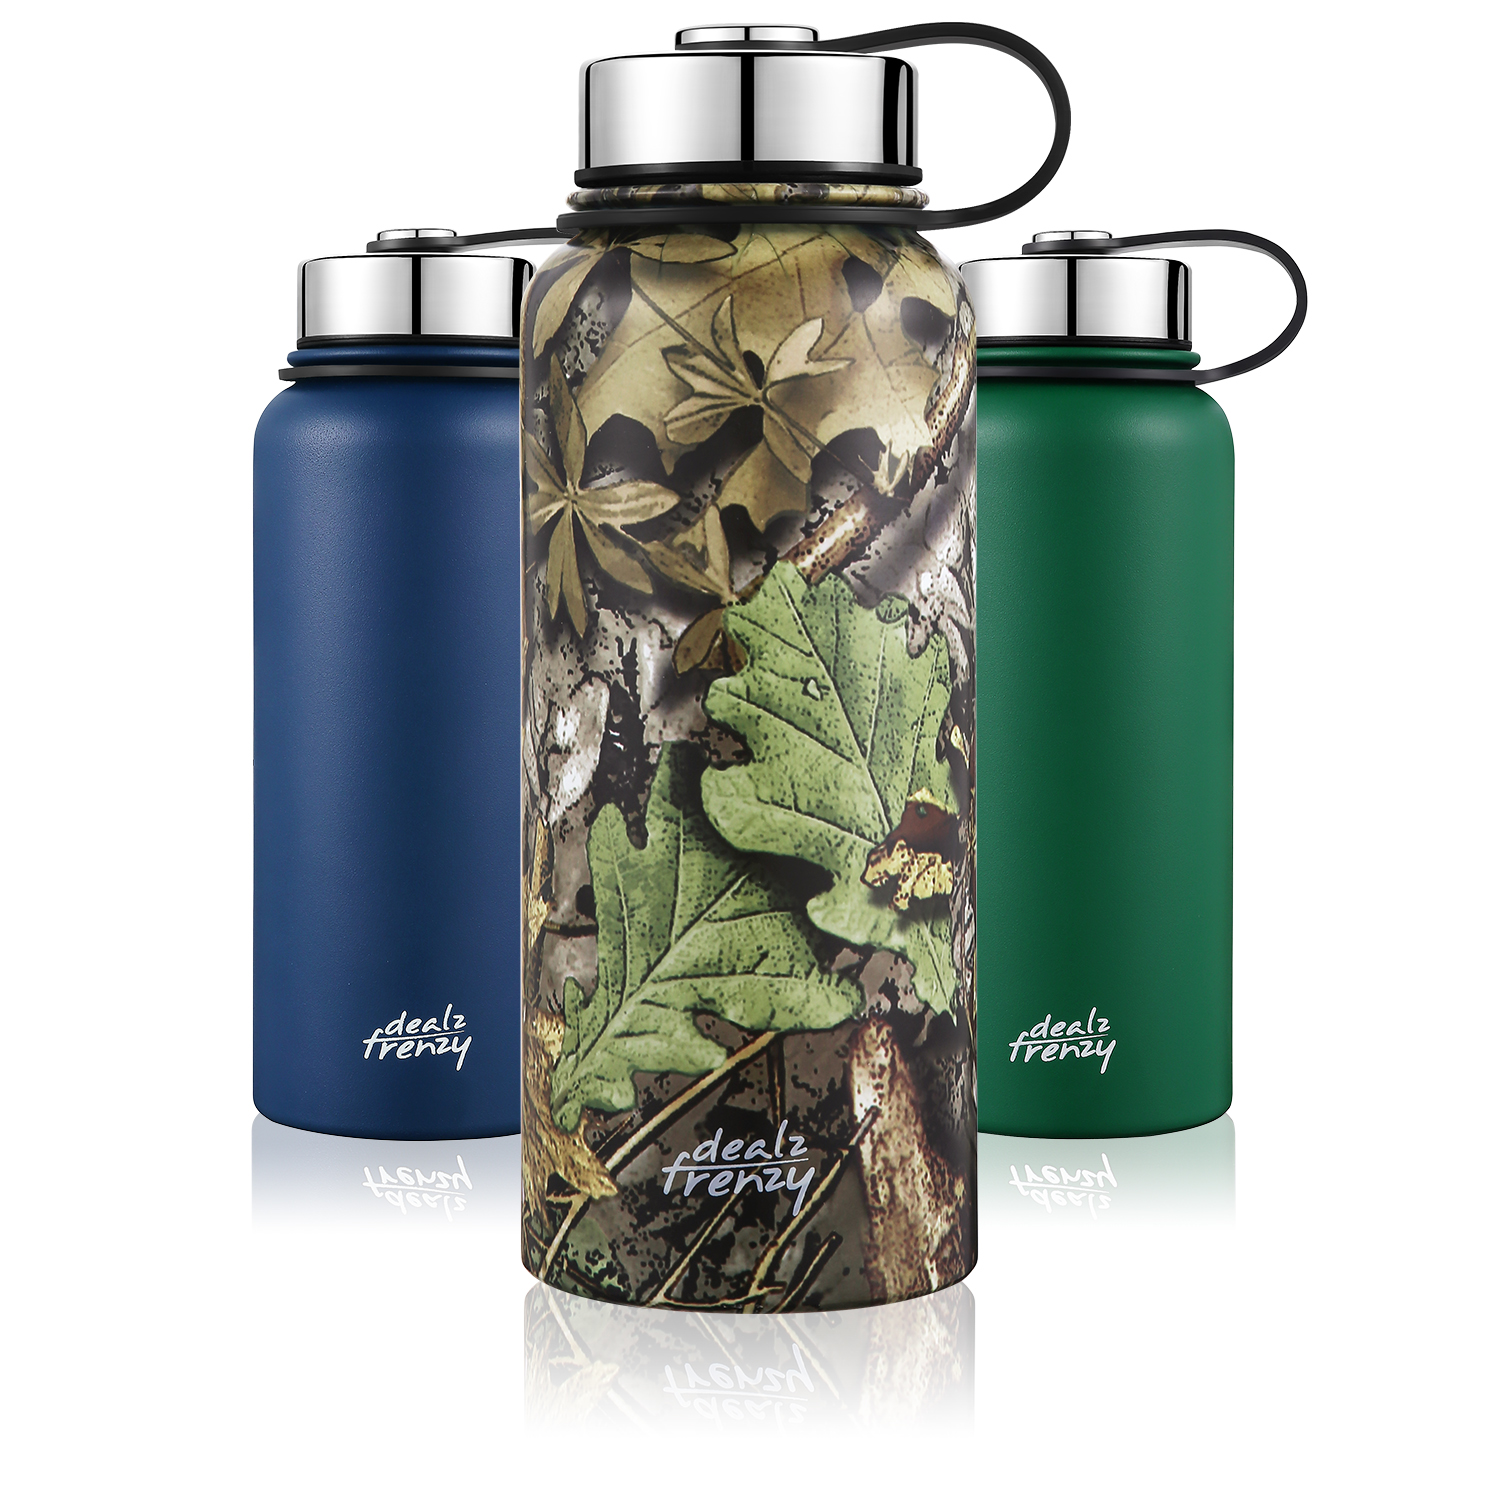 Time's running out! Save $4.19 on 32 oz thermos flasks with your Amazon coupon!